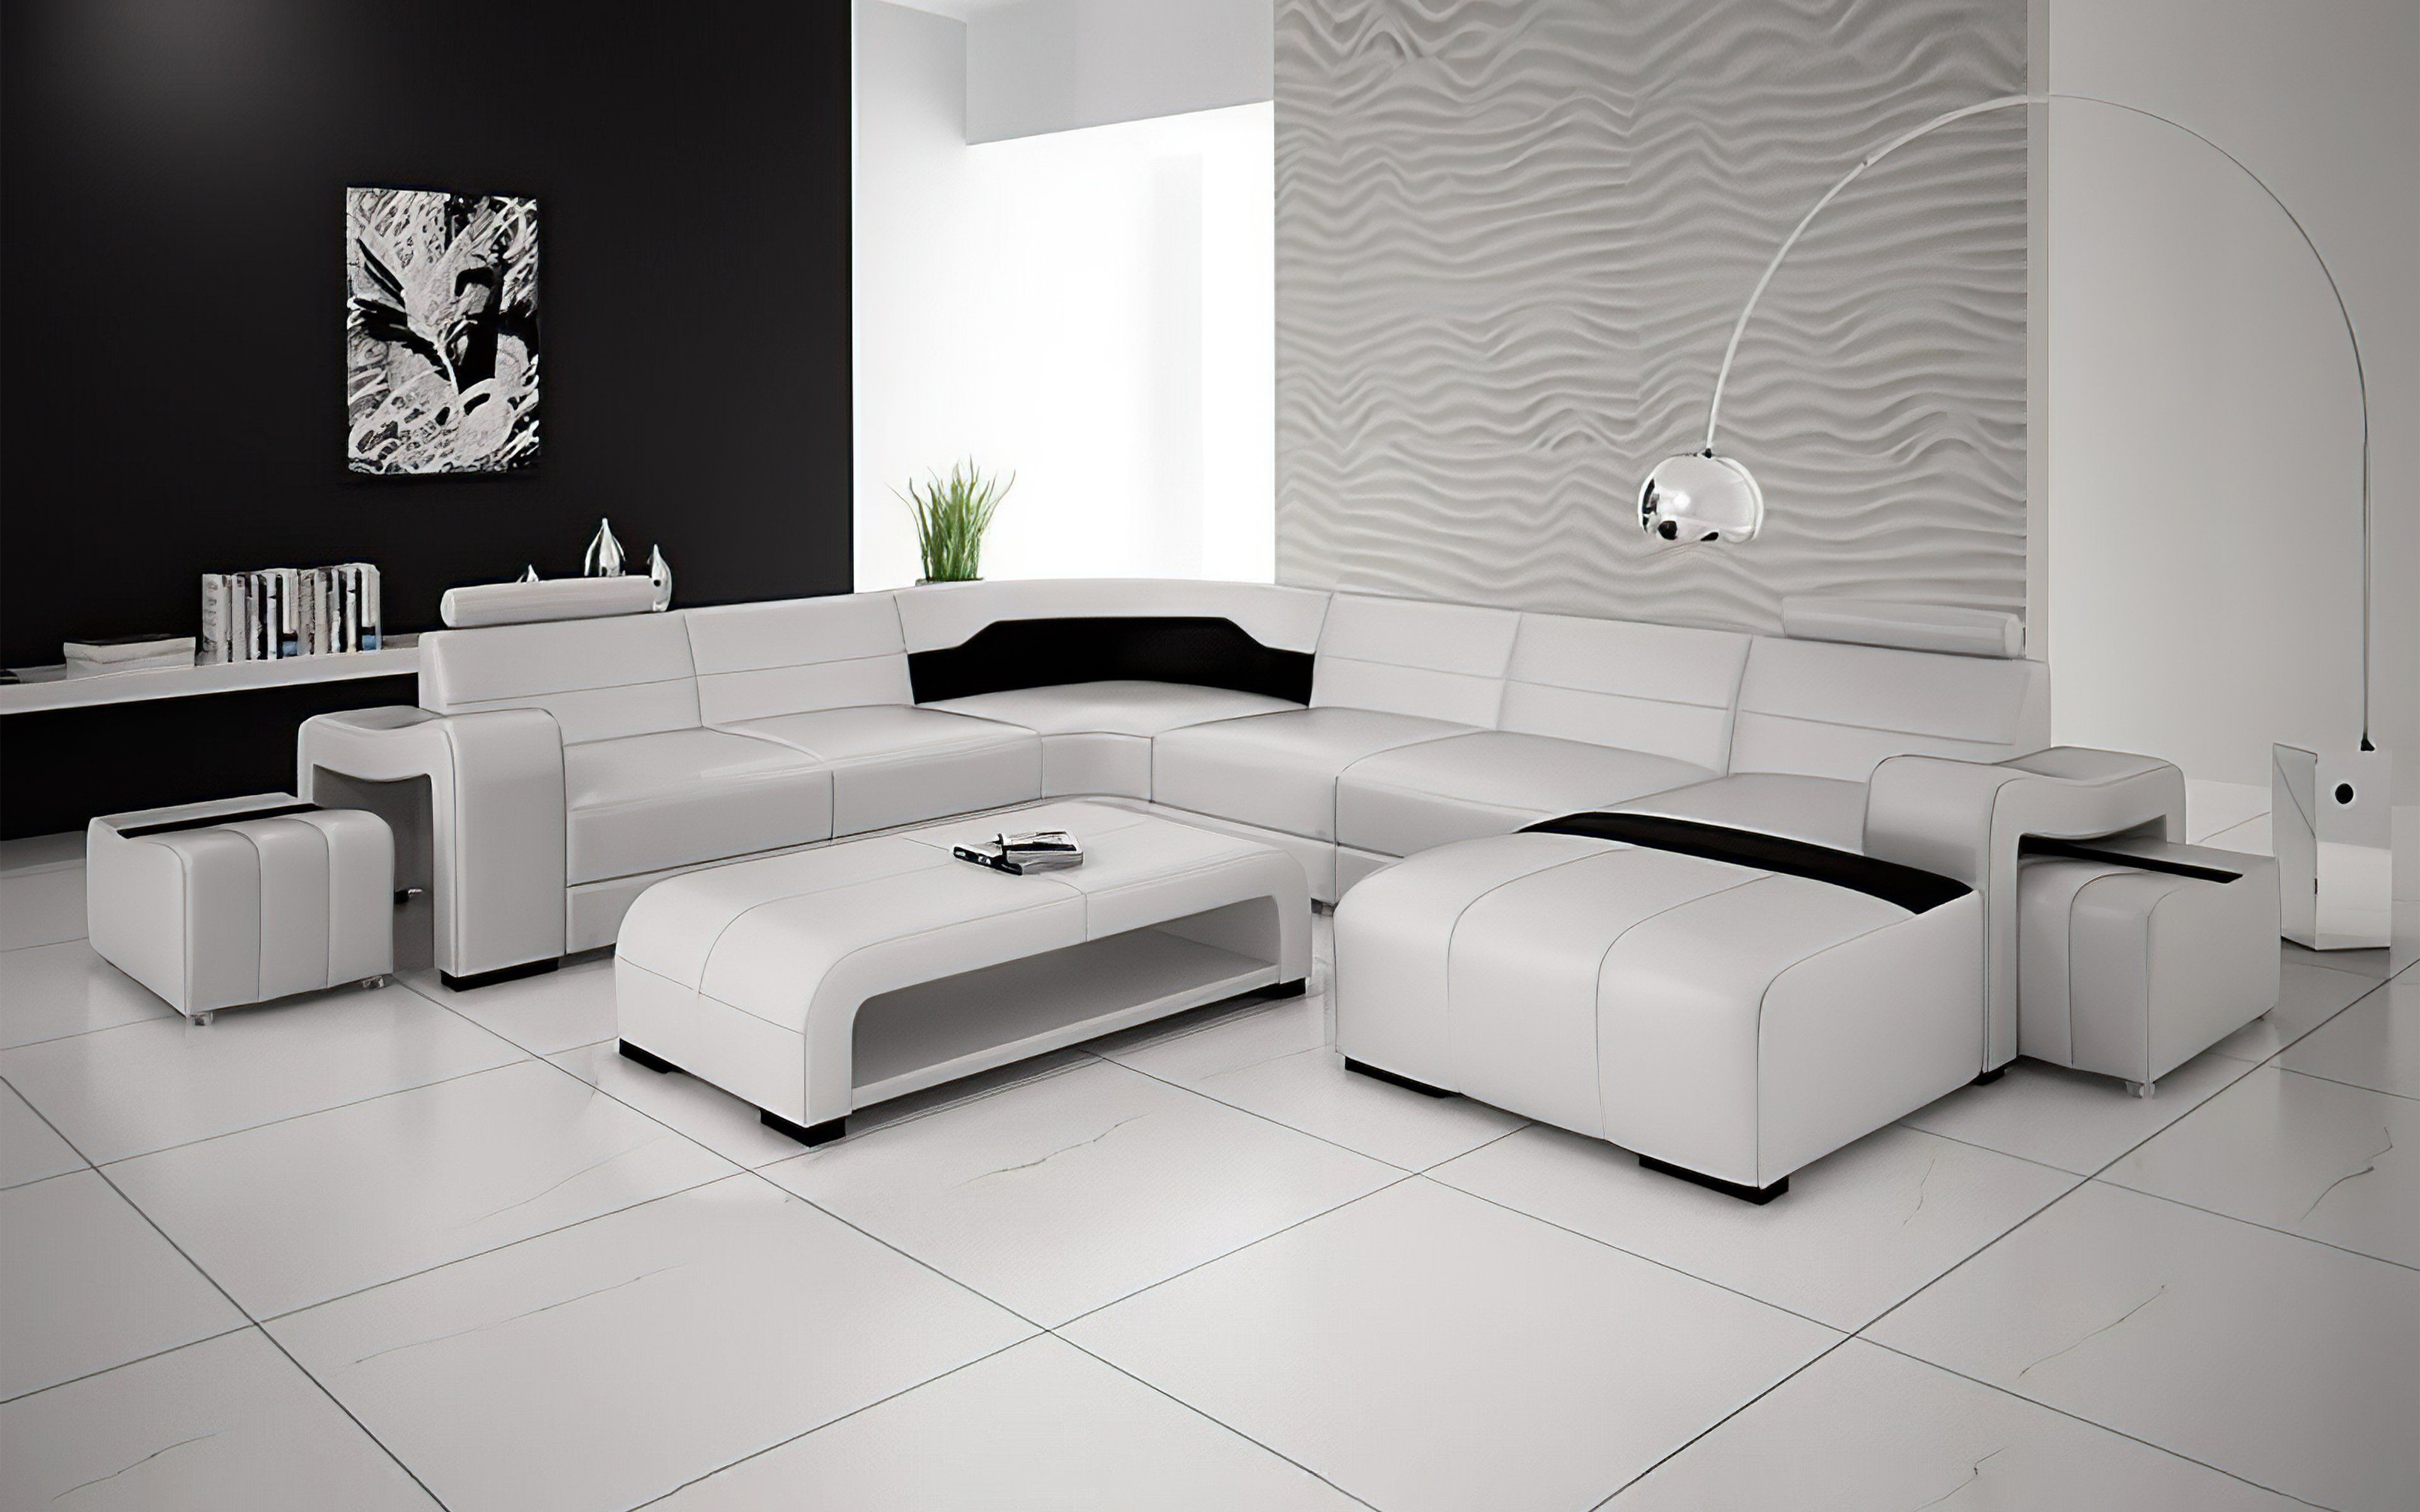 TABS Description Buying Modern Furniture In Las Vegas The Sunnydale Large Sectional with Ottomans is available in 10 different colors of genuine Italian or bonded leather. This sectional features hidden ottomans at both ends of the sectional, perfect for guests. A larger room or living room is a perfect fit for this sectional. Each top headrest is adjustable. The spacious chaise is perfect to lay down and rest after a busy day. This modern leather sectional is inviting and stylish, instantly mak